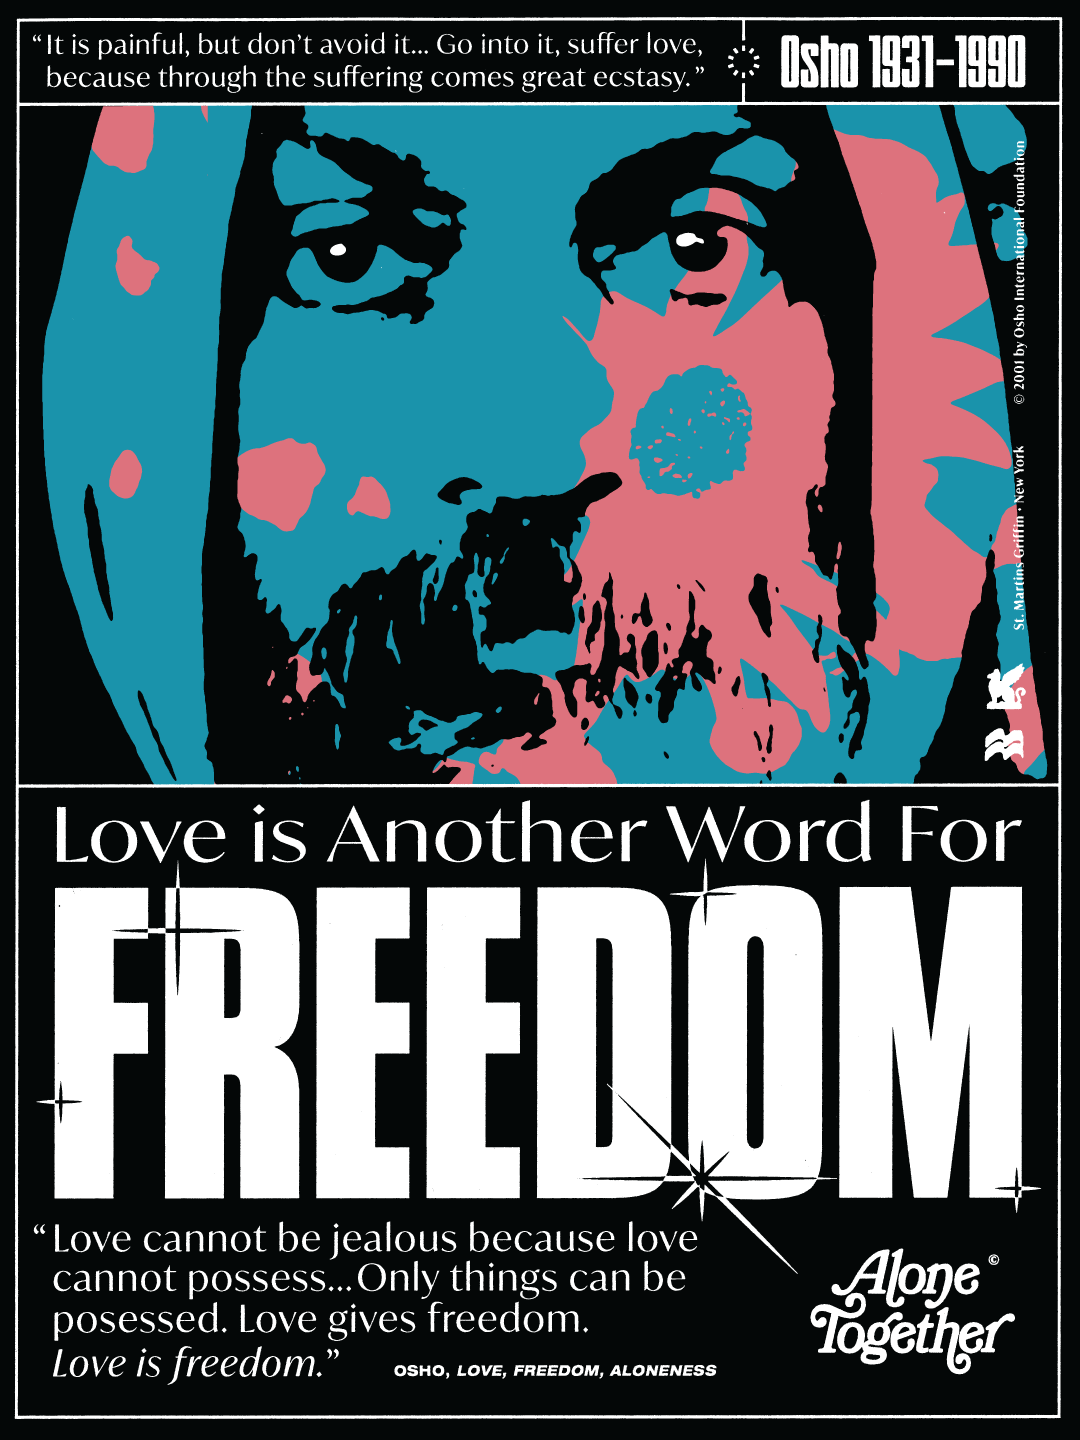 LOVE-IS-ANOTHER-WORD-FOR-FREEDOM-(1080)